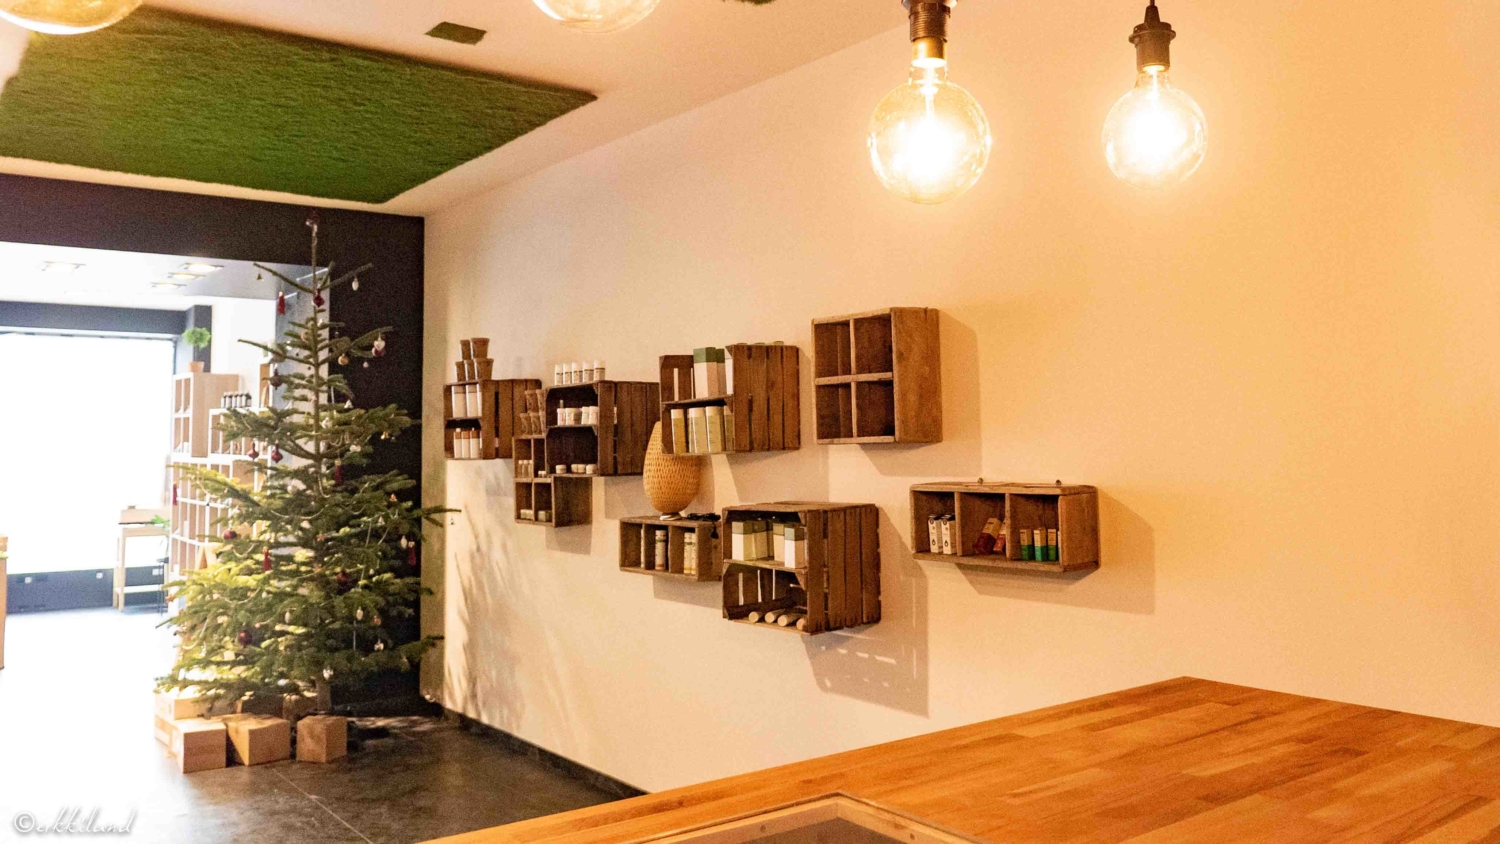 Mavelos Luxembourg Luxembuurg CBD Hemp Shop interior